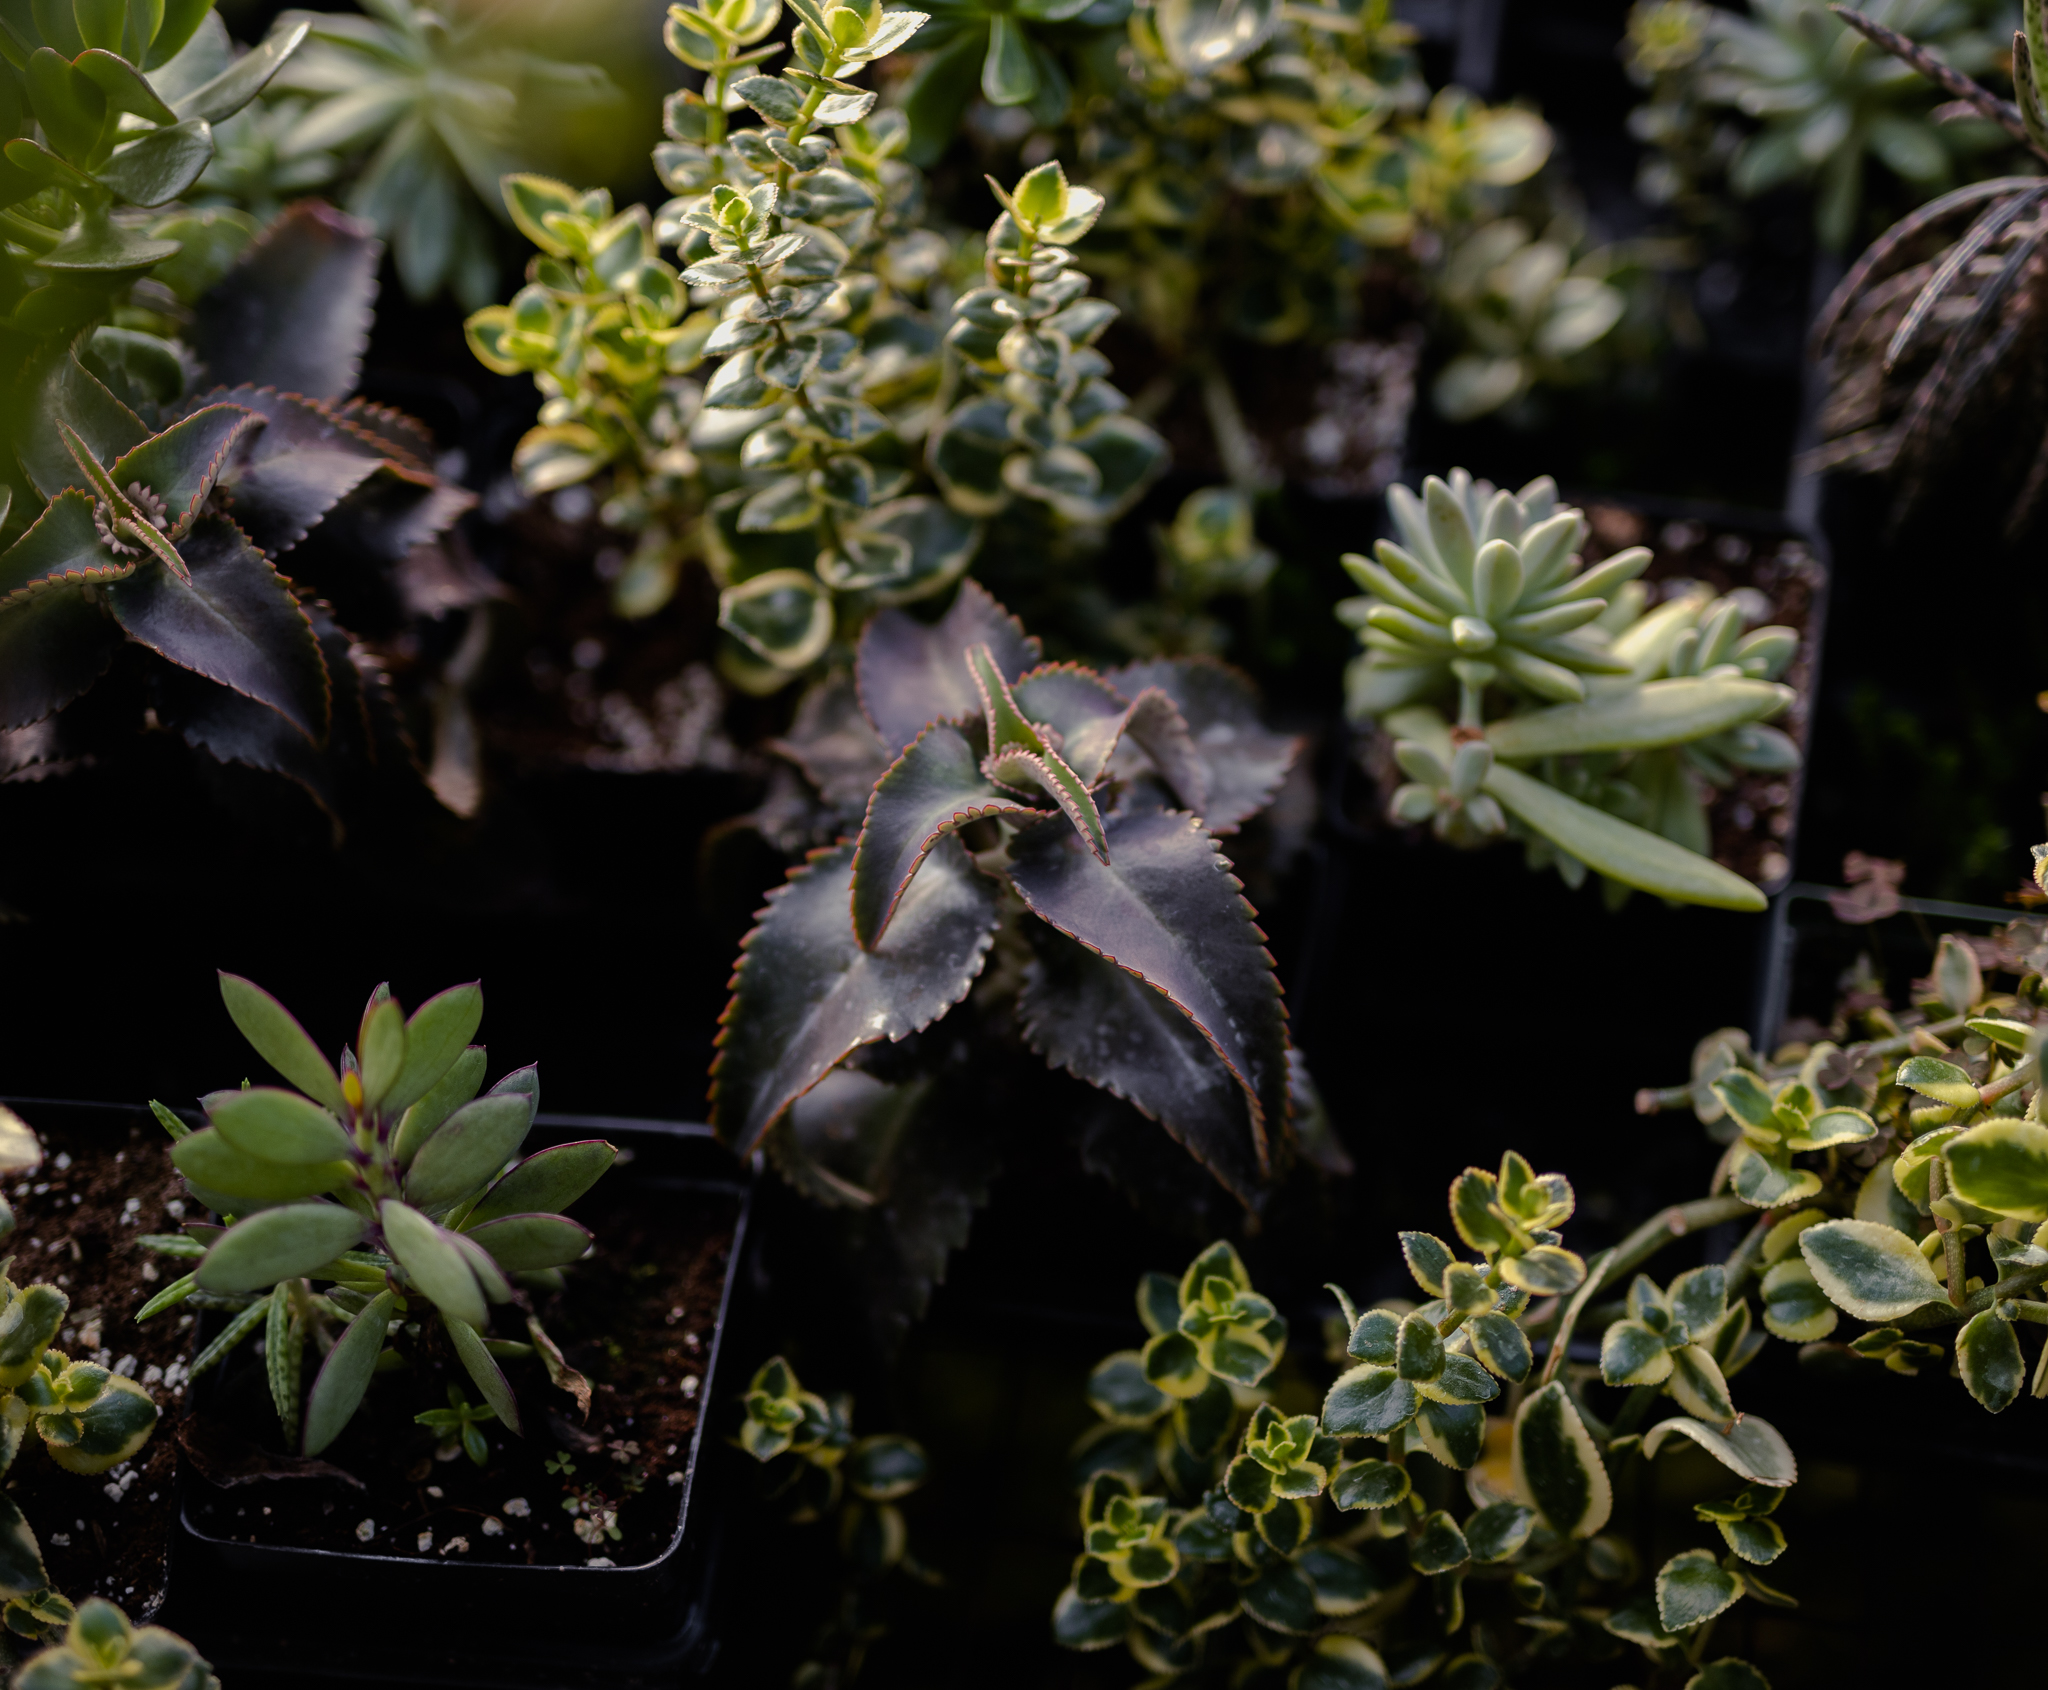 York_Greenhouse_Plants_Garden_Hueters-18.jpg